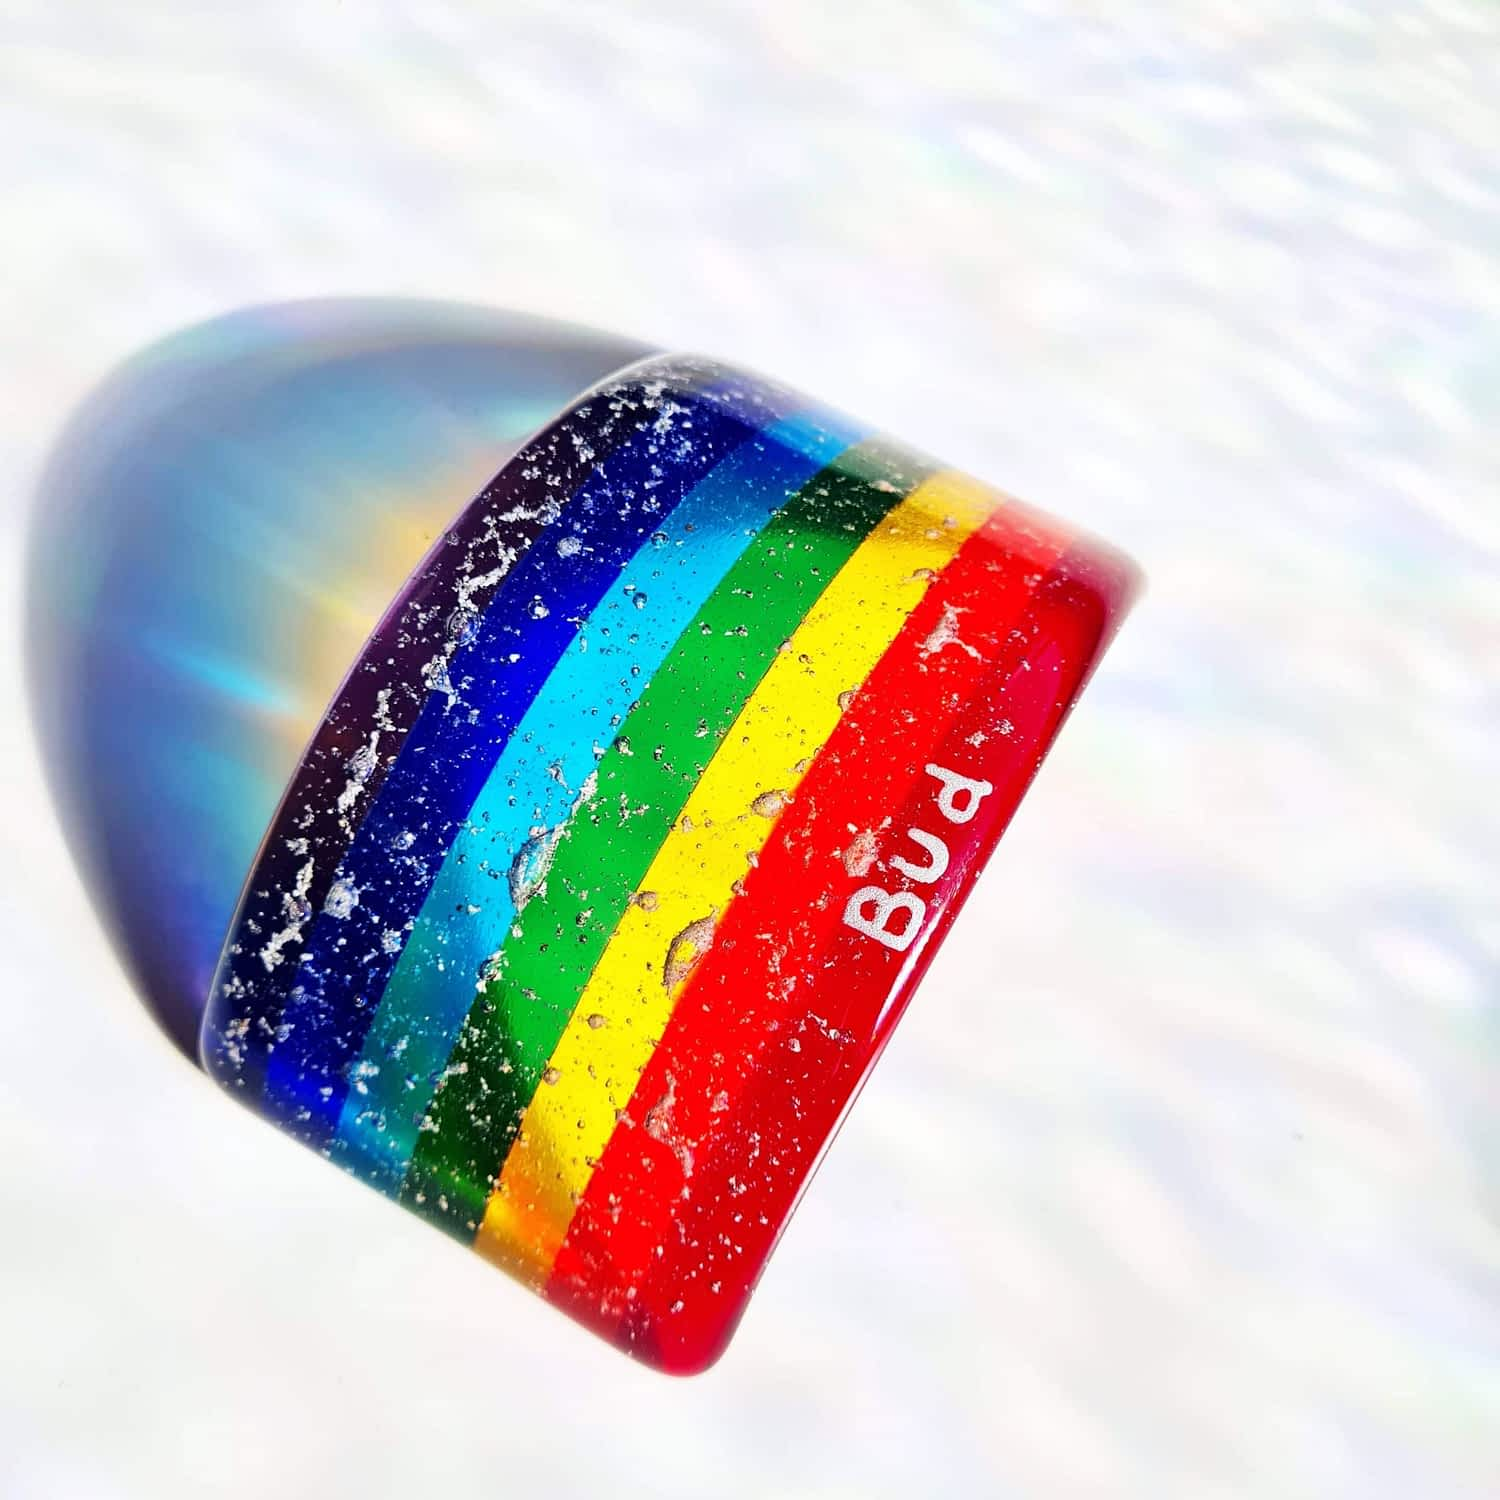 A rainbow bridge featuring cremation ashes fused inside the glass with silver personalised text.